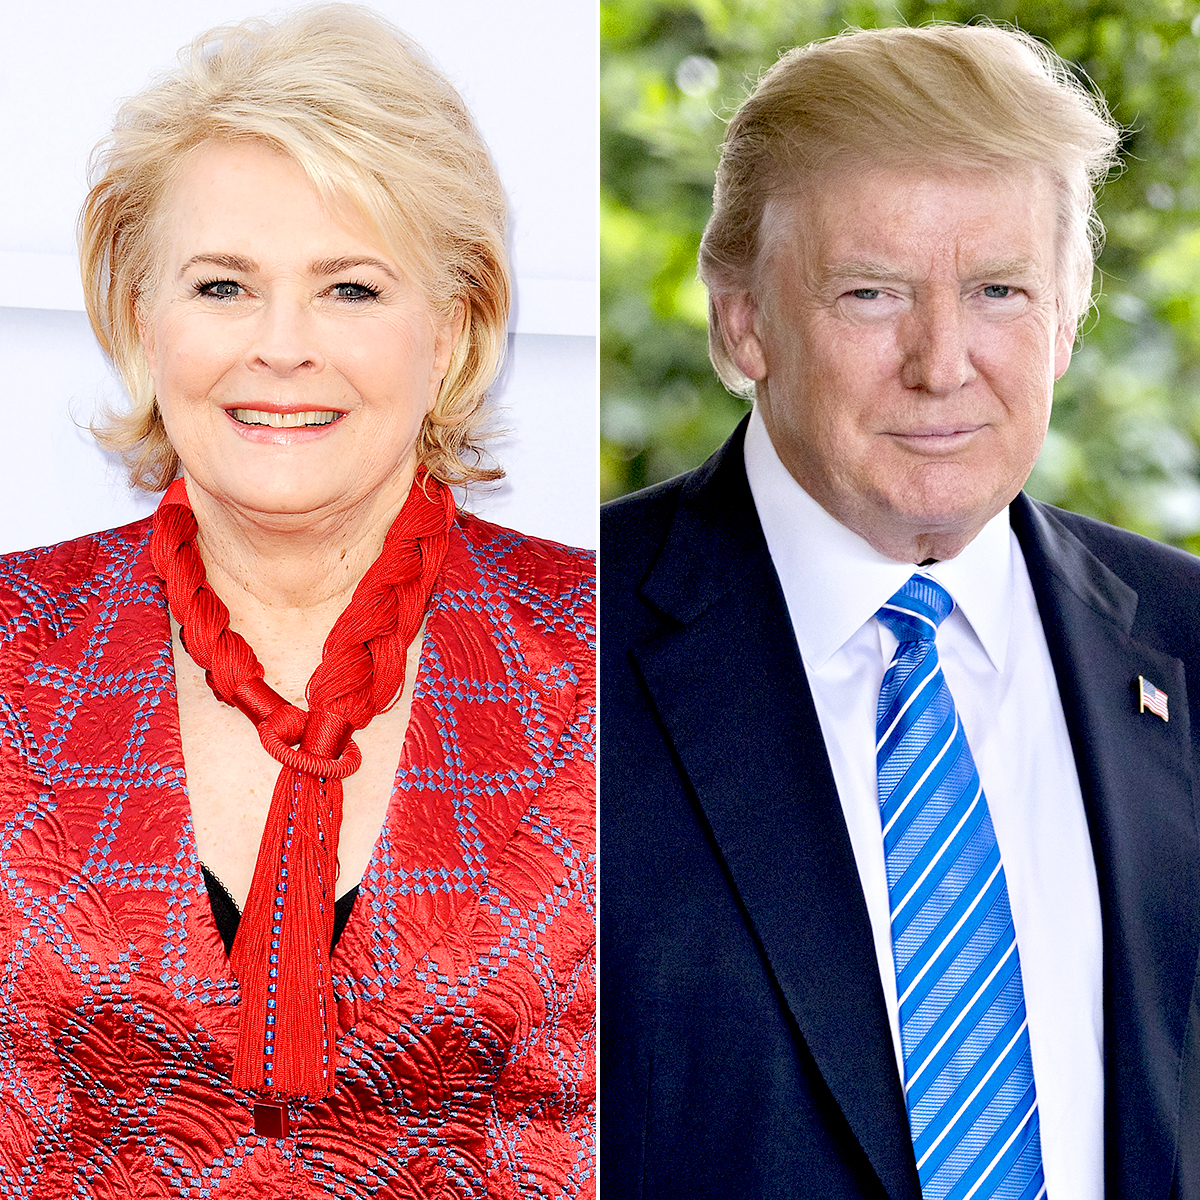 Discussion on this topic: Claire Cox, candice-bergen/